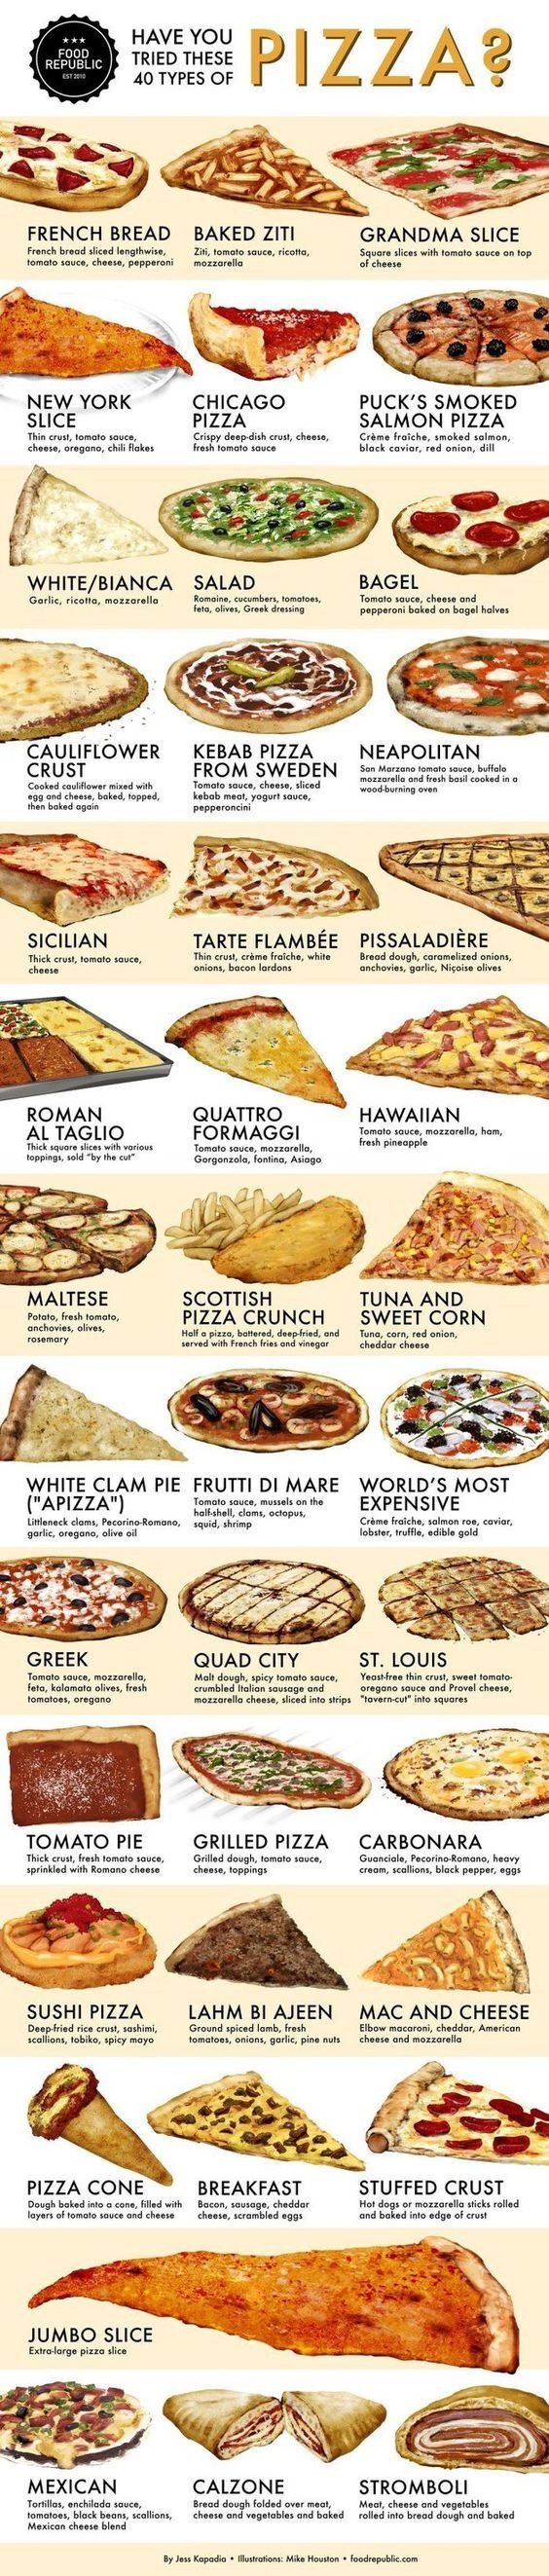 Pizza! Get your Piizzaaa!